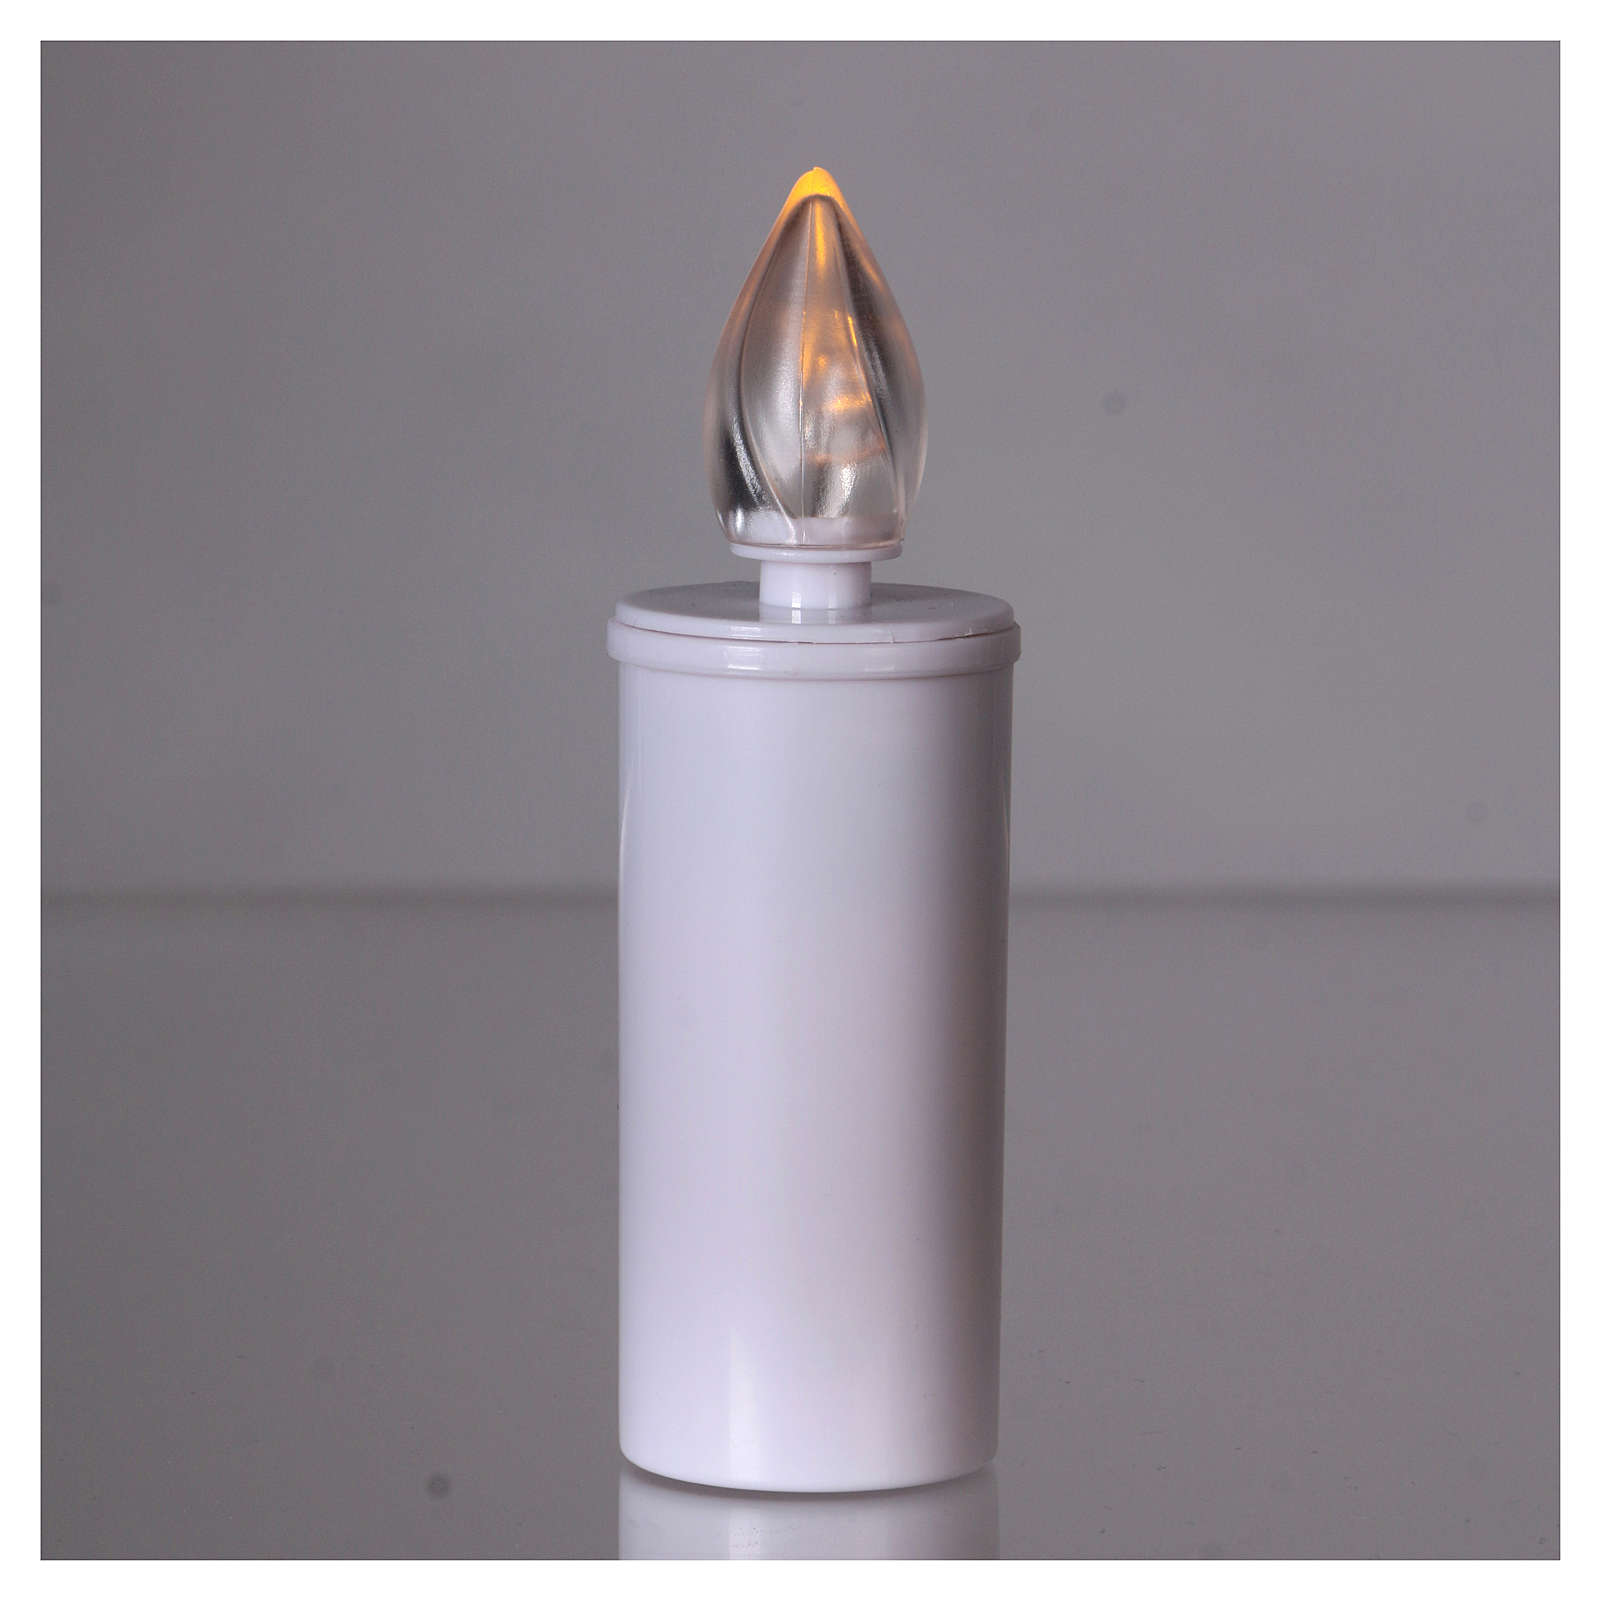 Lumada votive candle with yellow flickering light, disposable 3